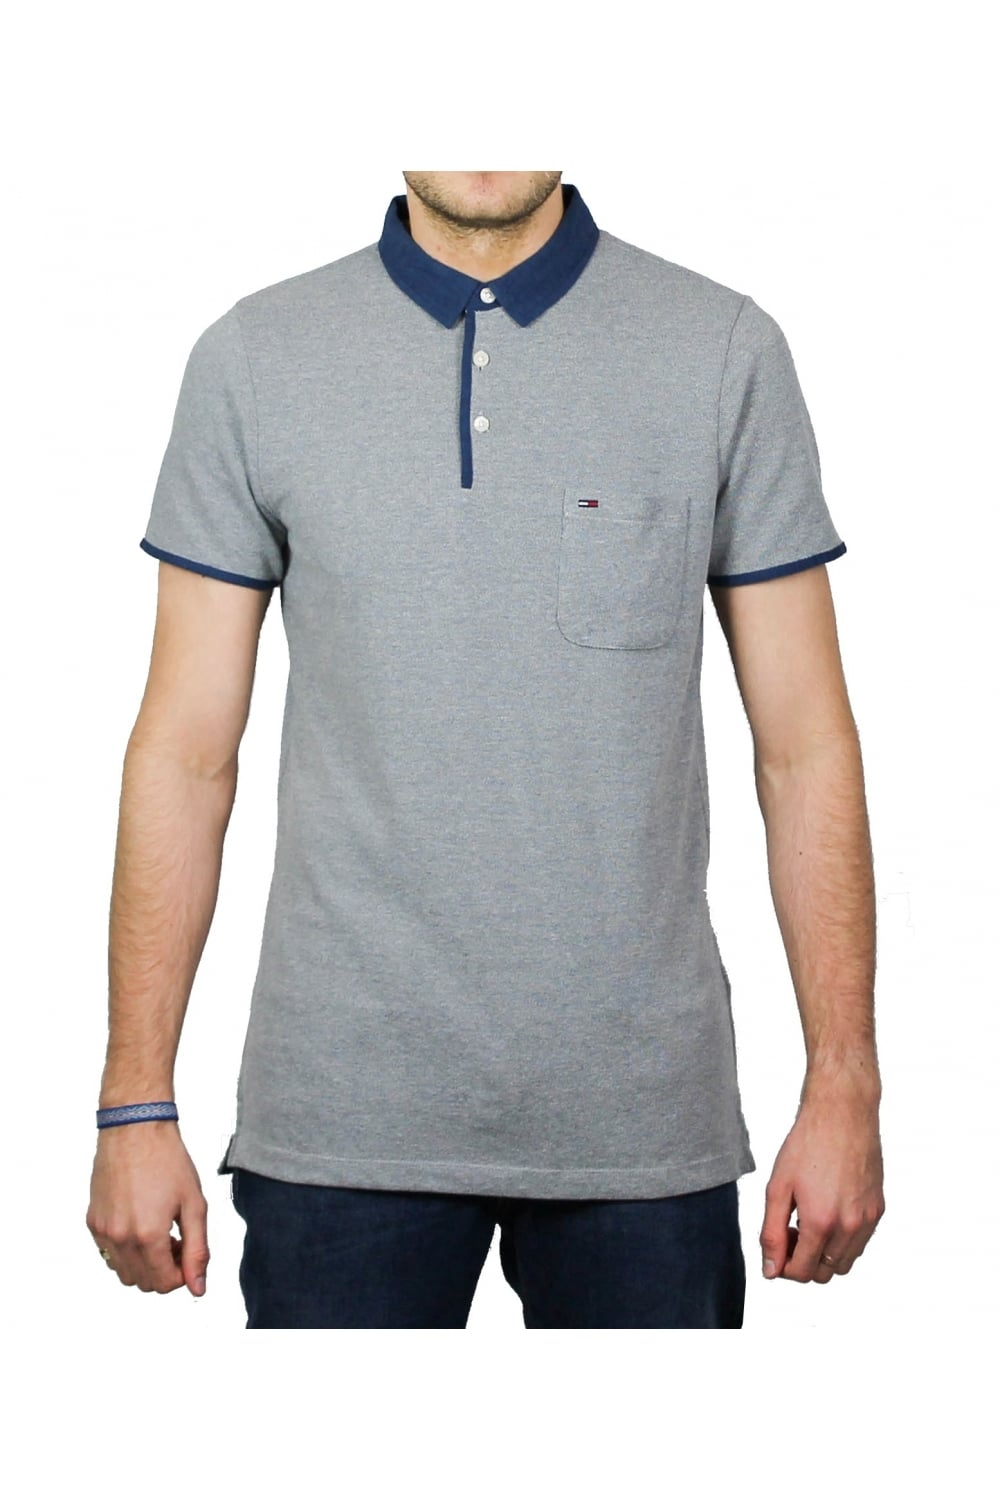 e7b91c4c39b1 Tommy Hilfiger Denim Basic Short-Sleeved Polo Shirt (Grey) | ThirtySix